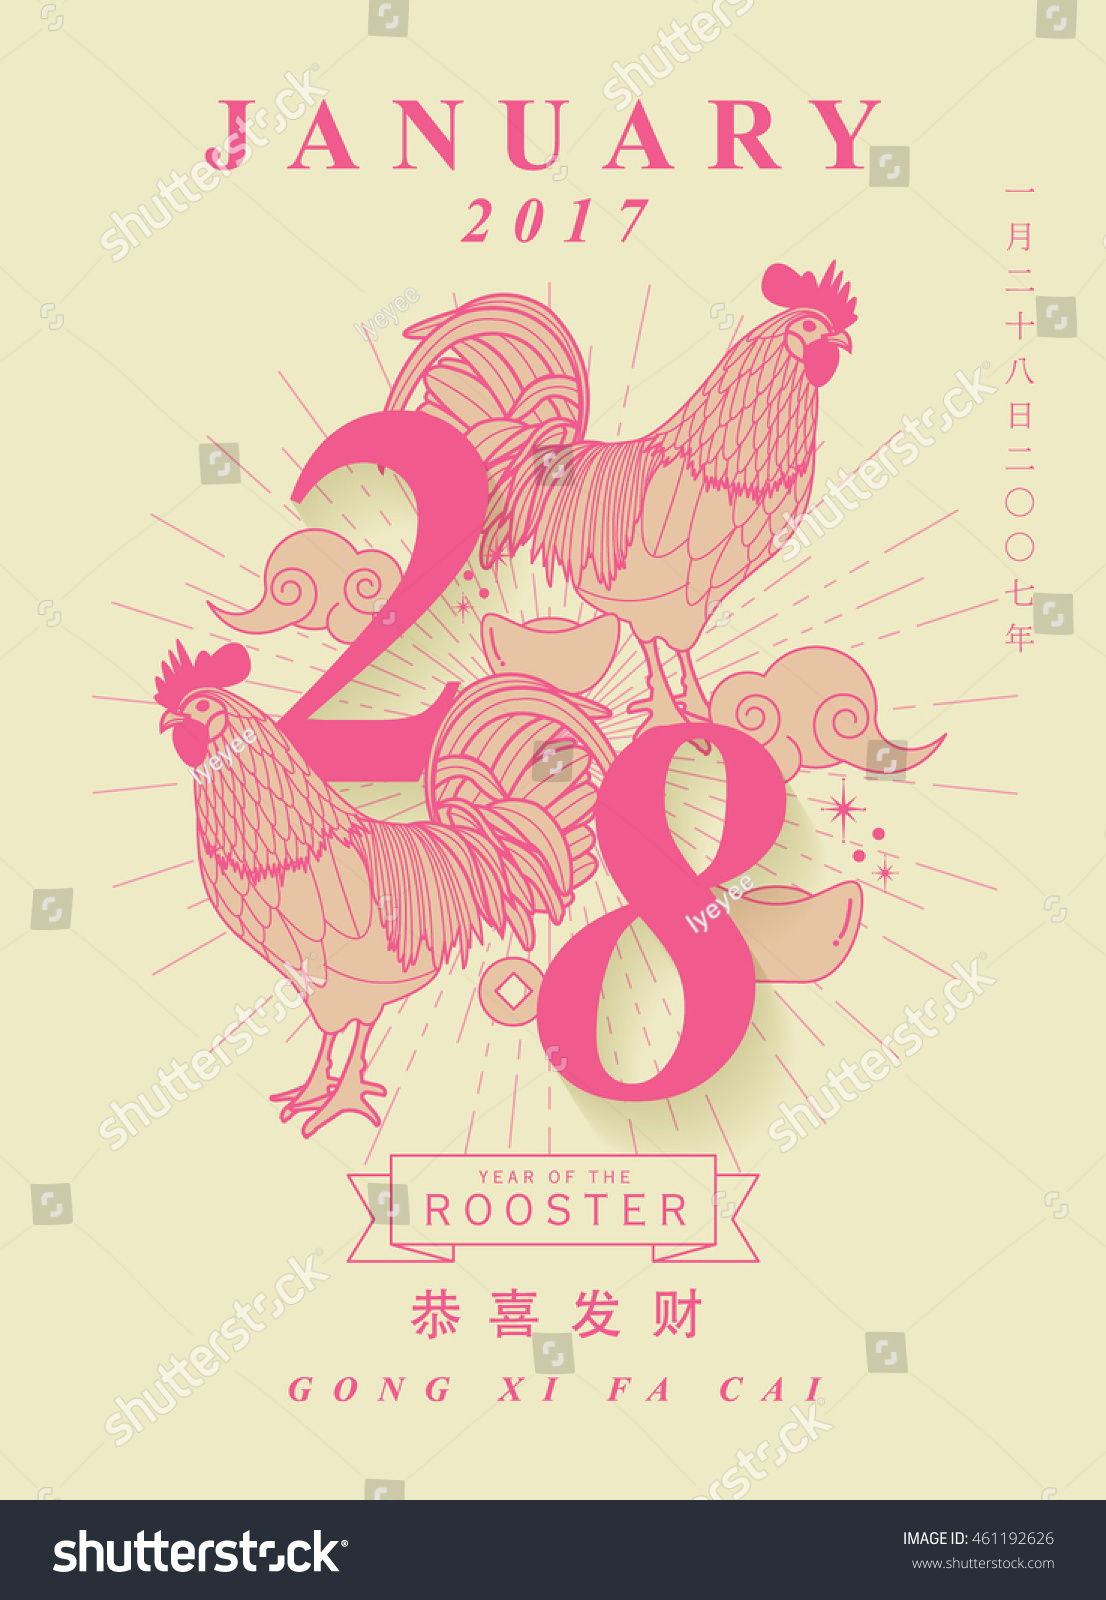 Chinese Calendar Illustration : Chinese new year calendar stock vector